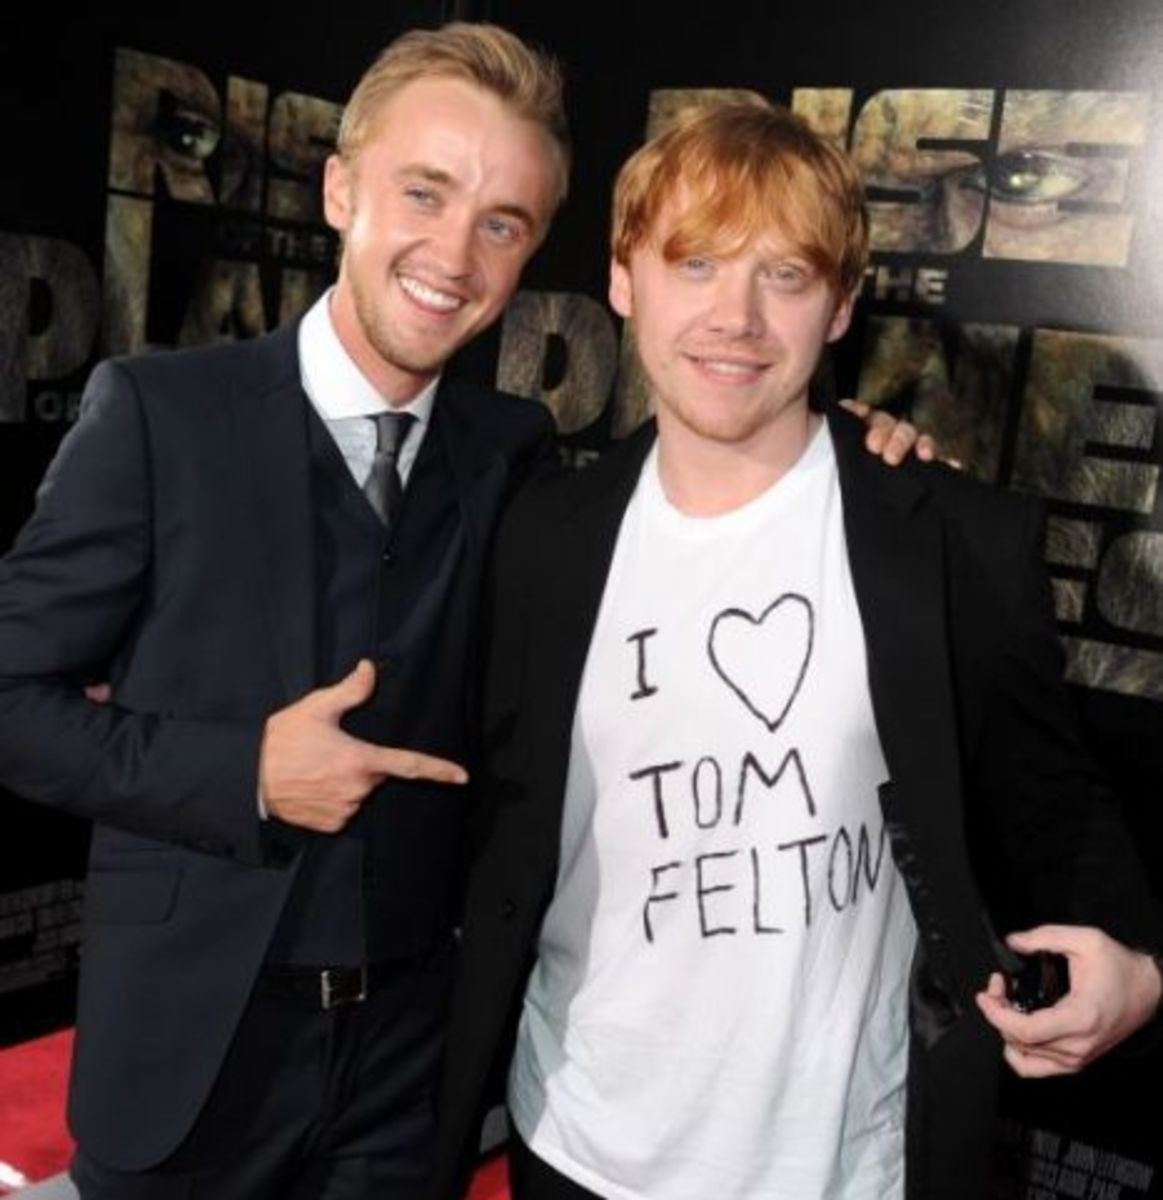 Rupert and Tom have stayed friends throughout the years.